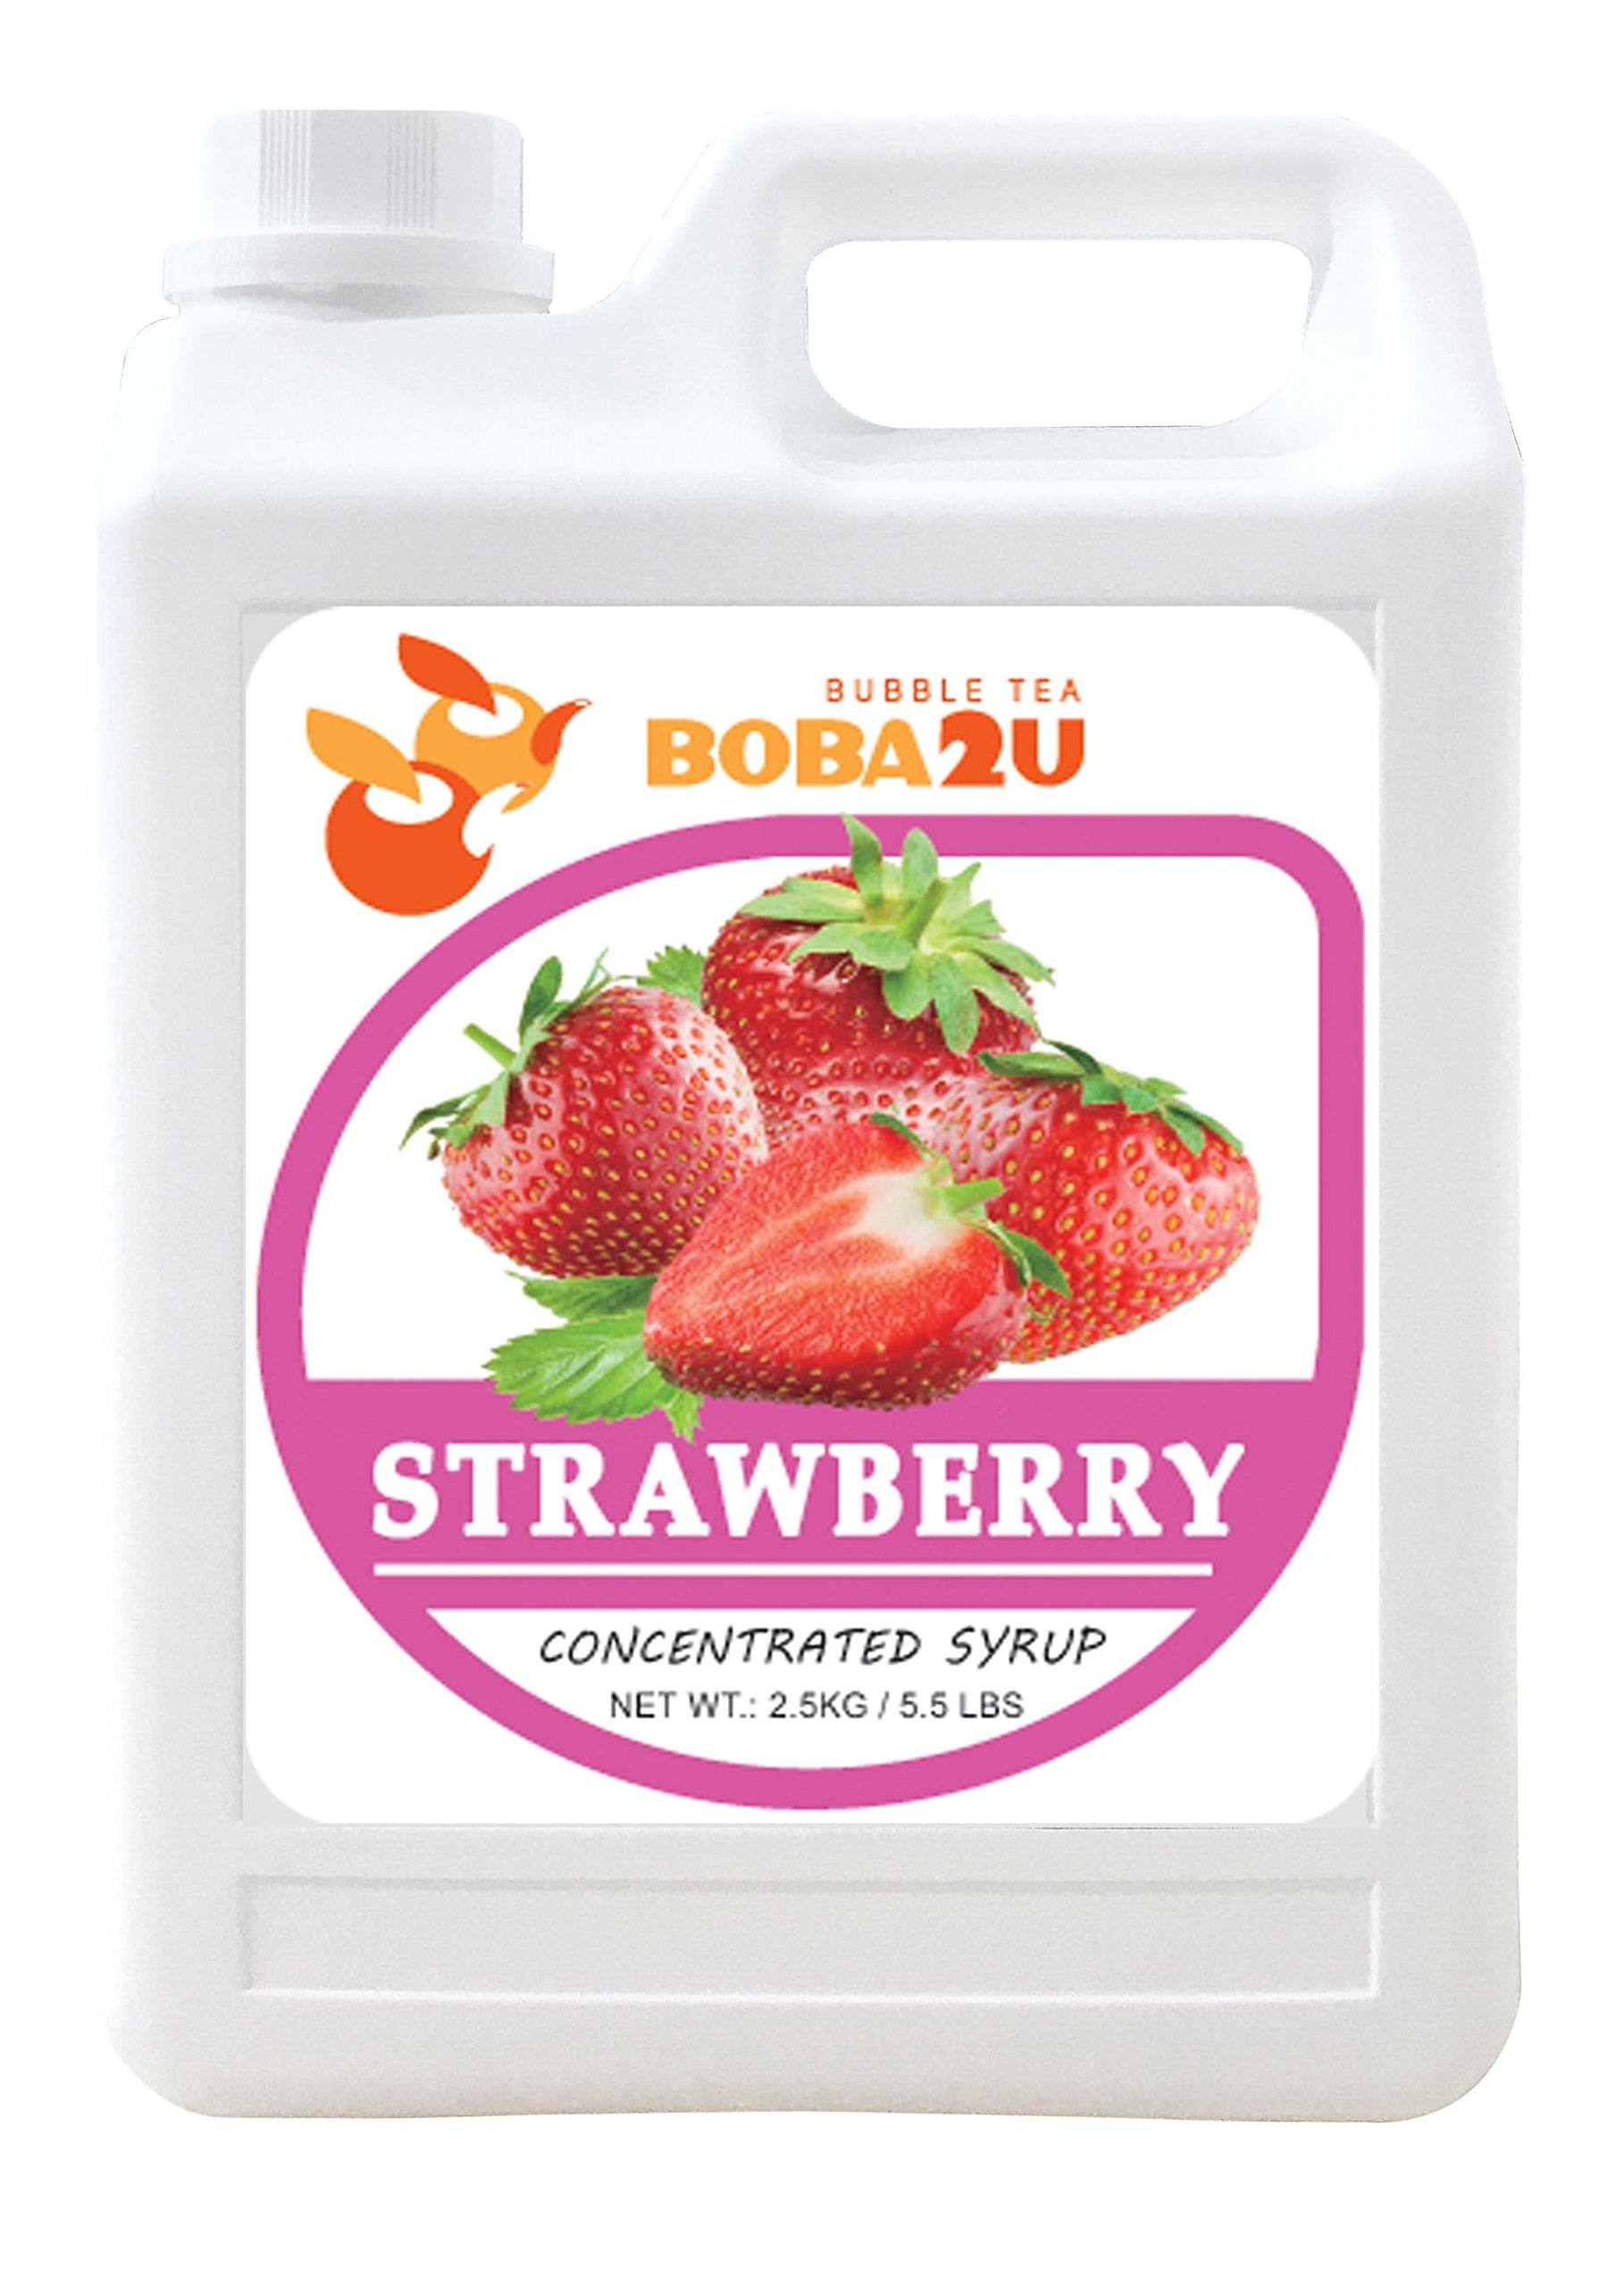 BOBA2U CONCENTRATED SYRUP STRAWBERRY 5.5 LBS